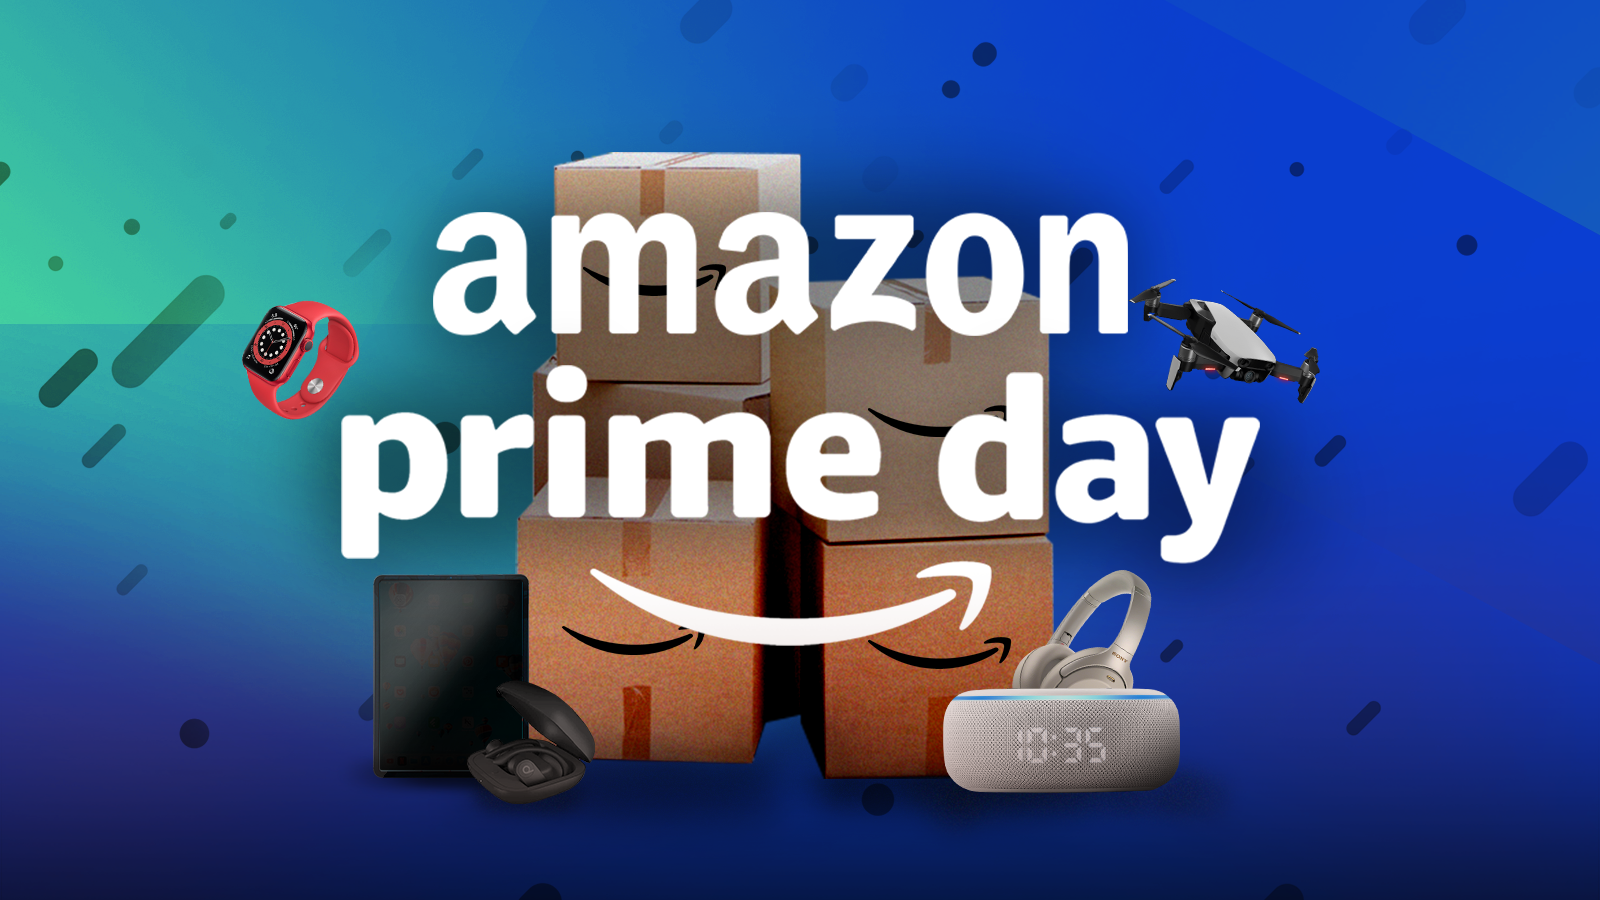 Amazon Prime Day Images